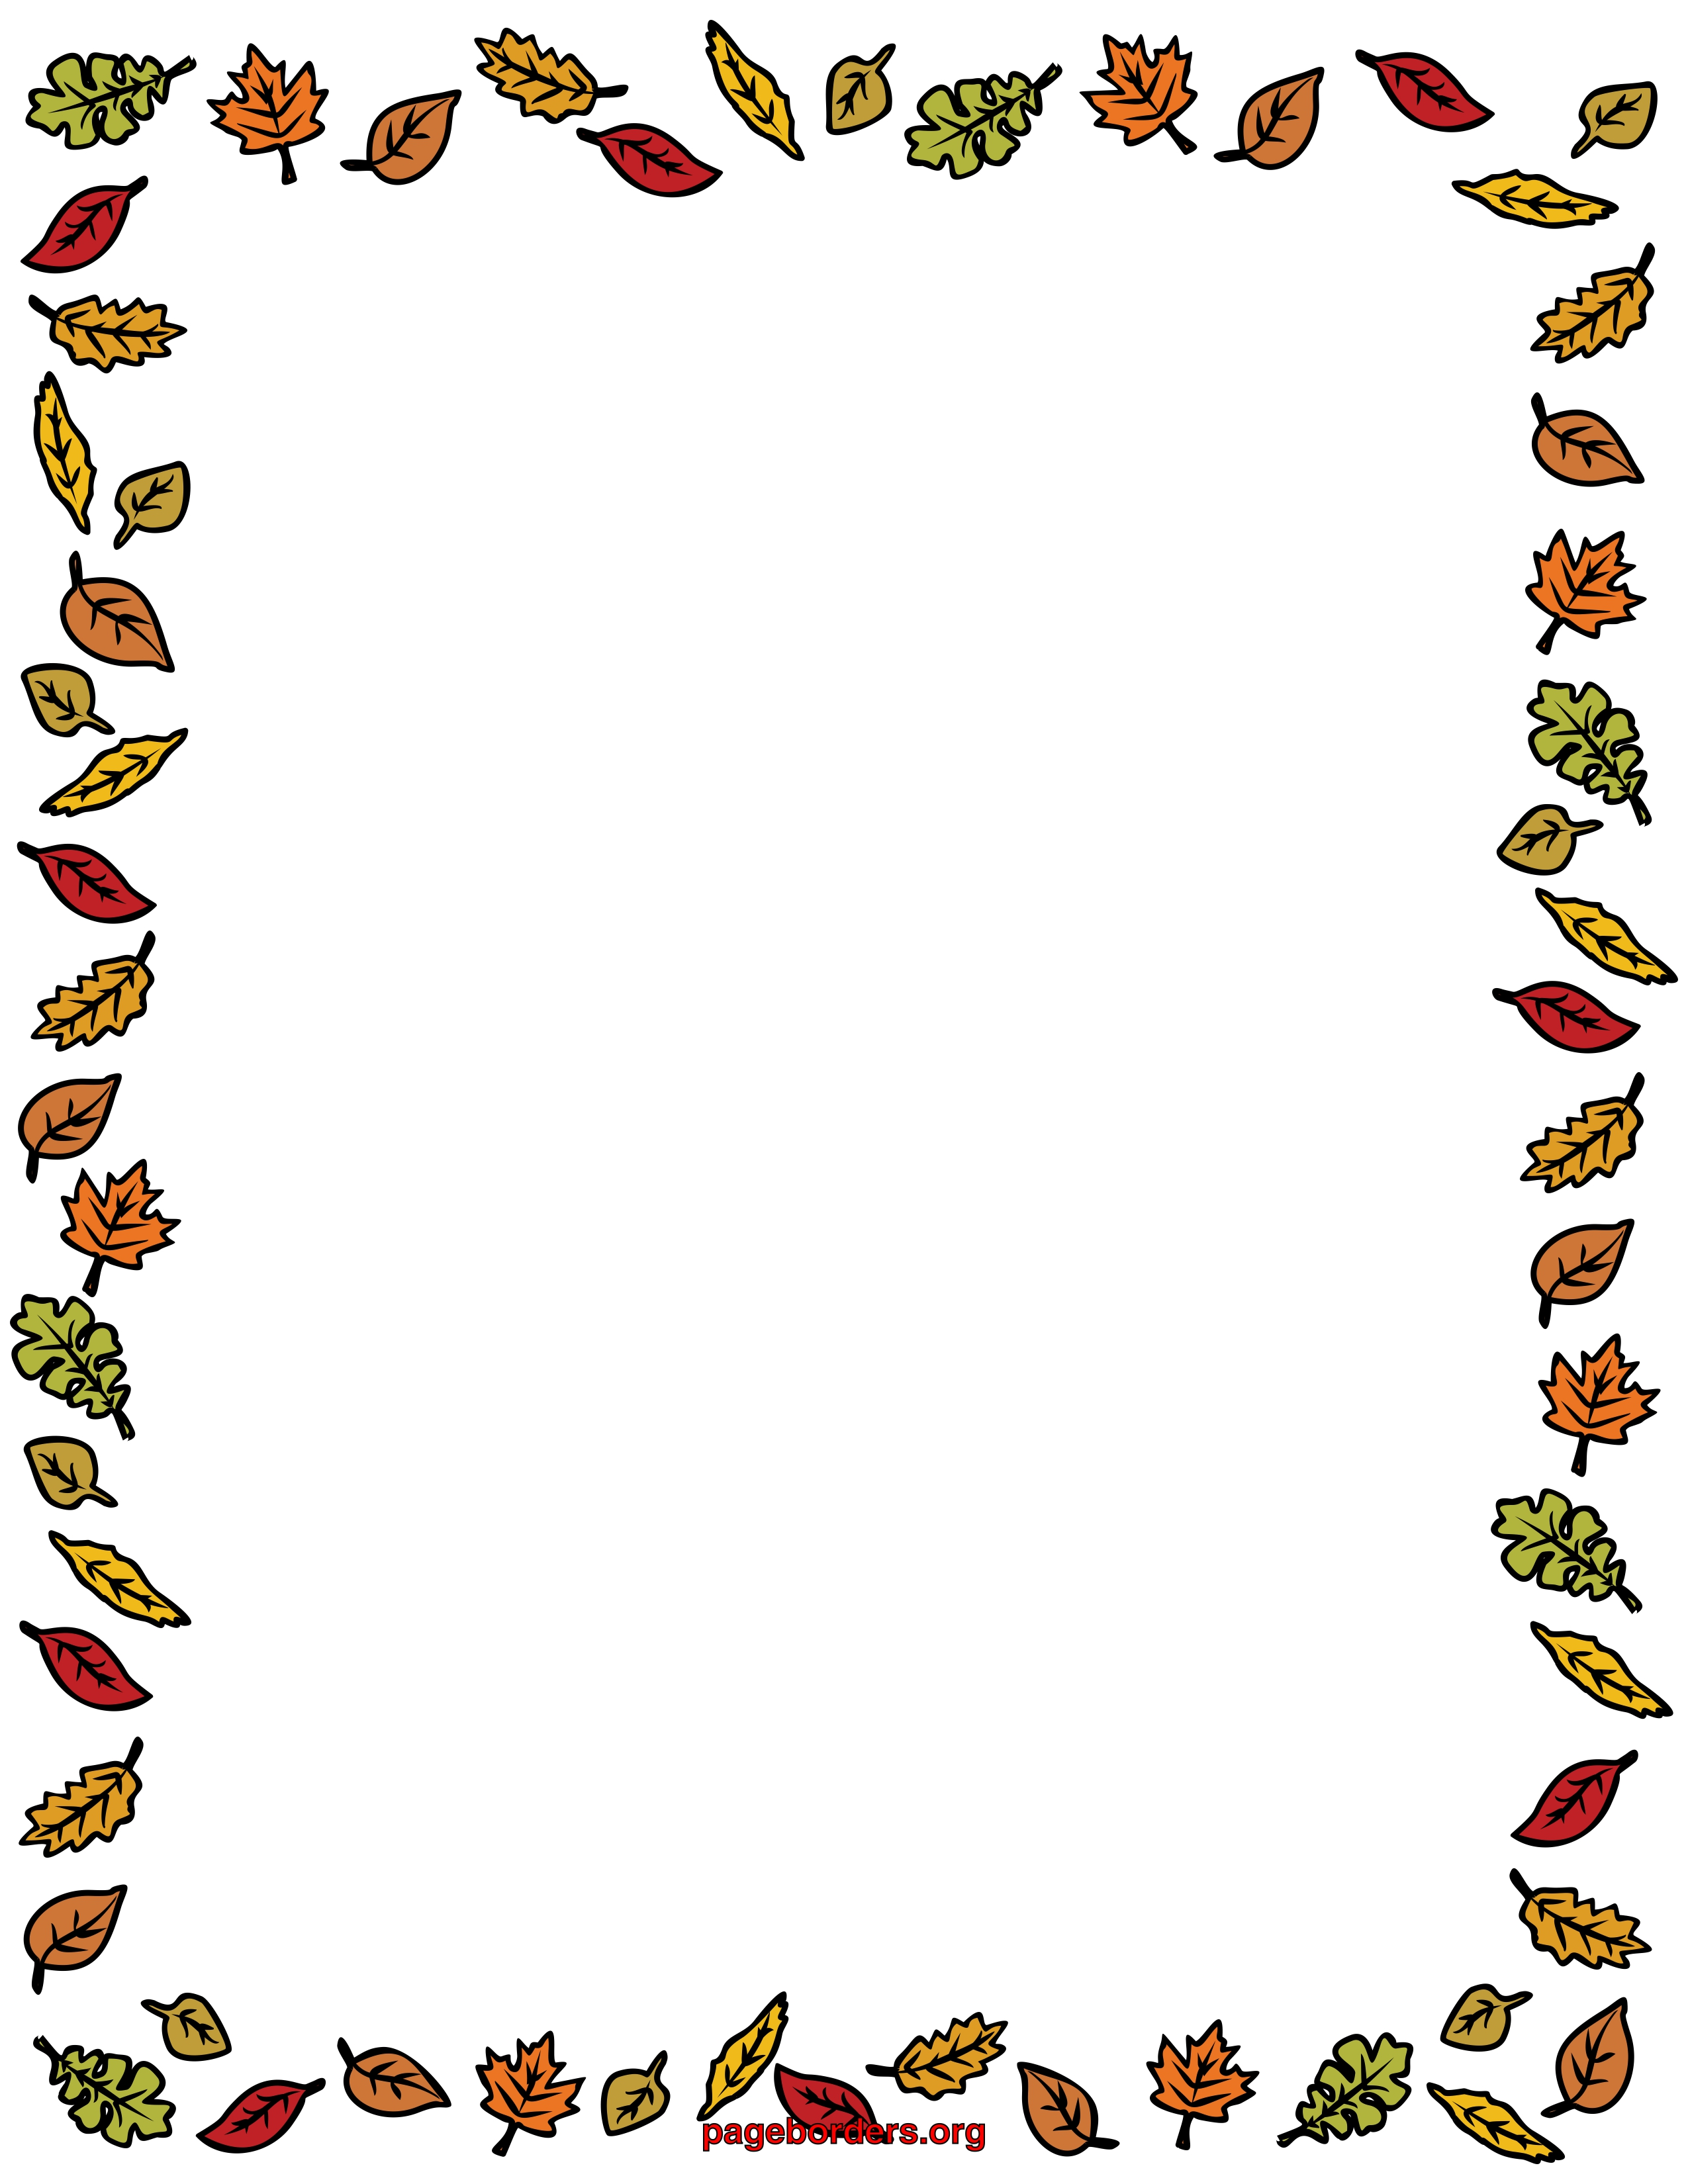 Free Coloring Pages Of Autumn Border-Free Coloring Pages Of Autumn Border-15